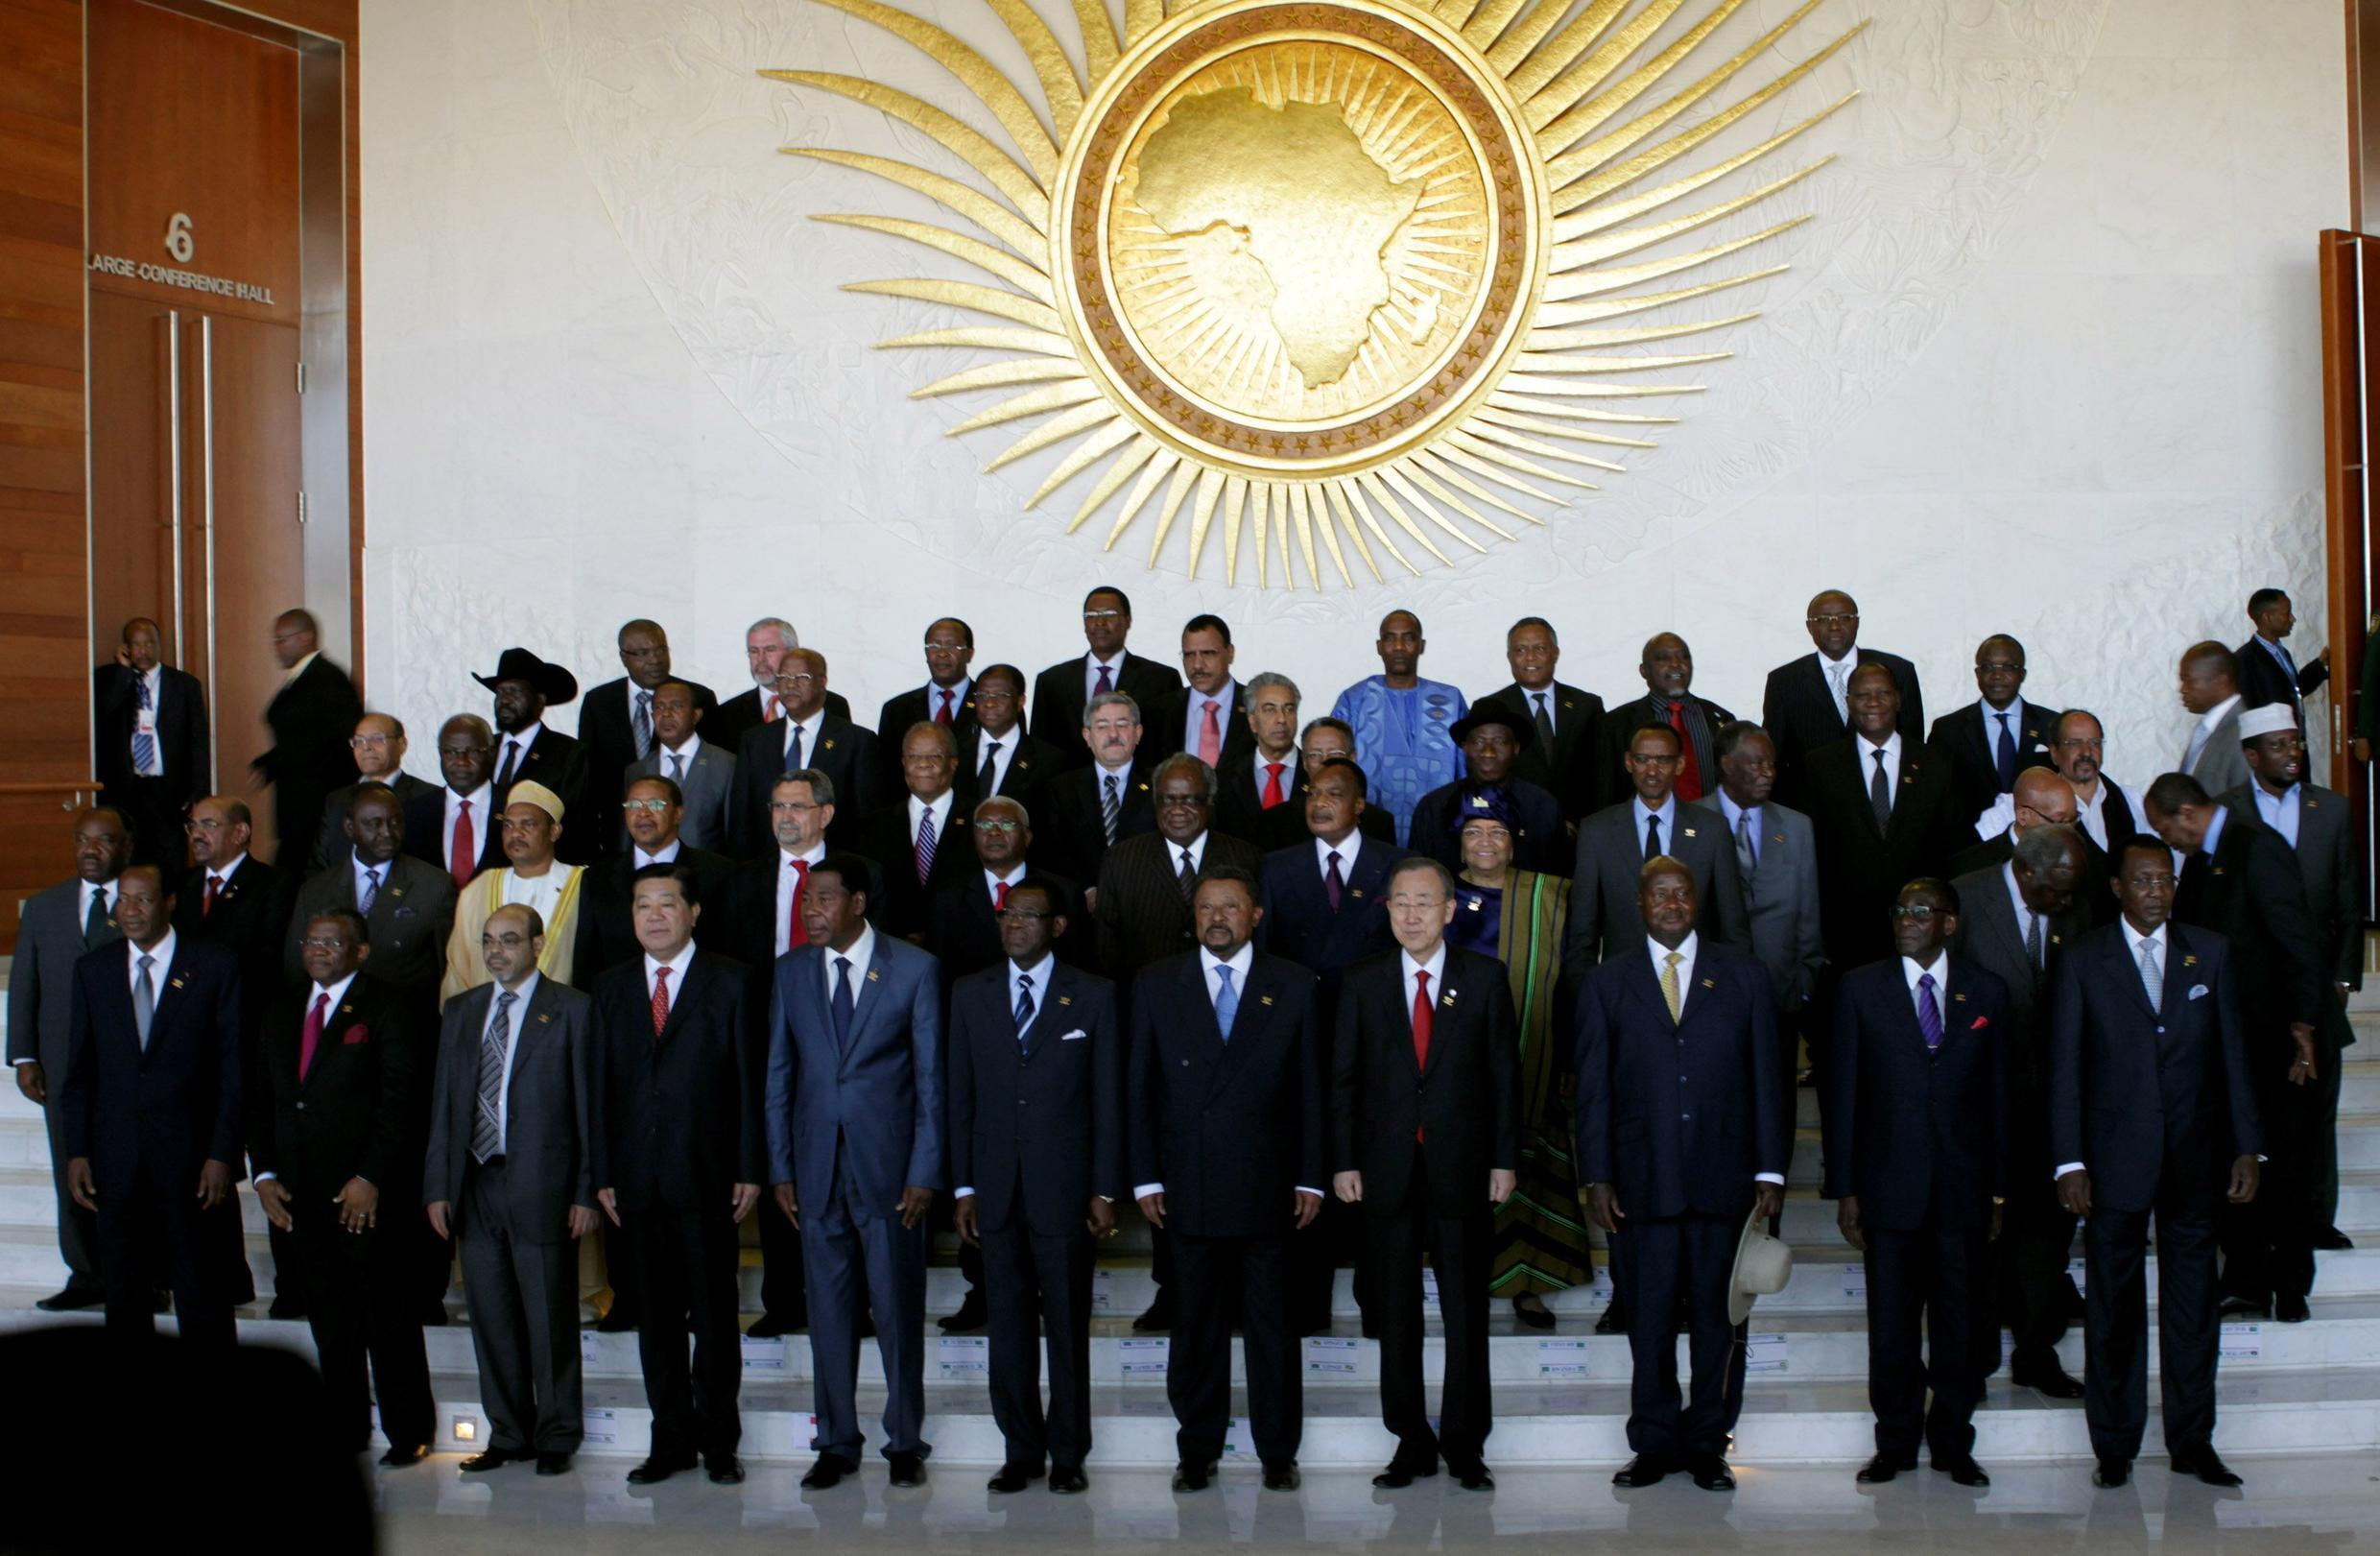 African leaders pose for the group photograph at the AU summit in Addis Ababa, 29 January